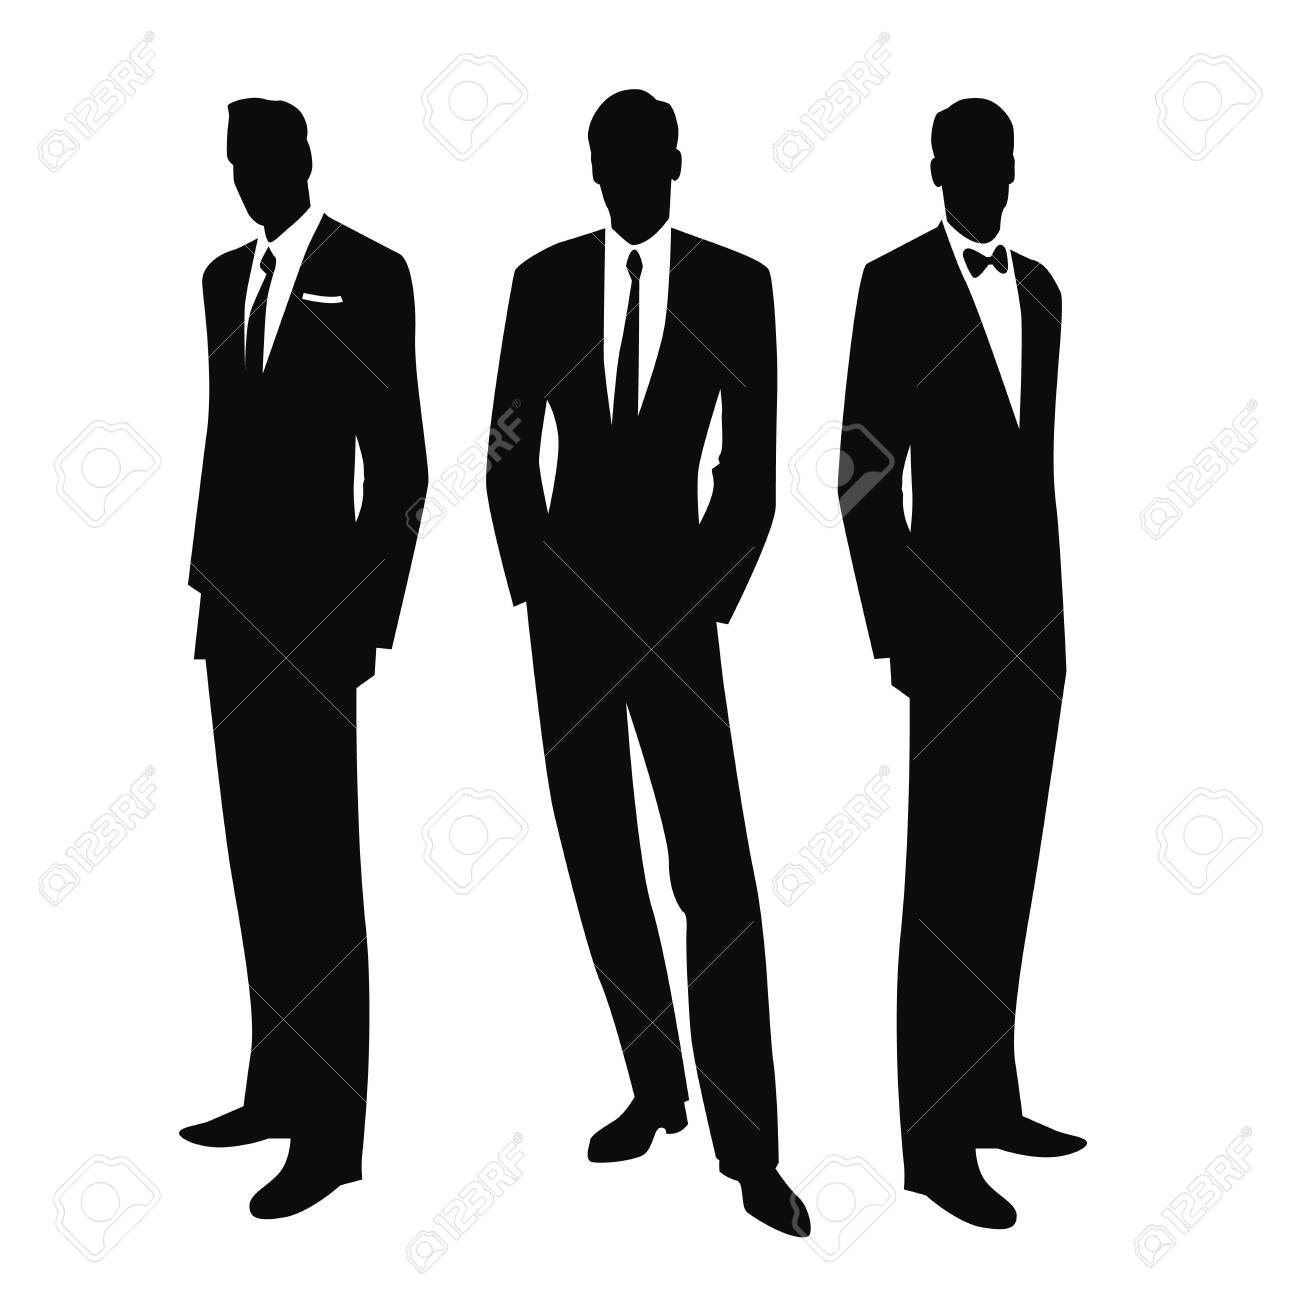 Silhouettes of three men in the retro style of the 50s or 60s isolated on white background - 134527508